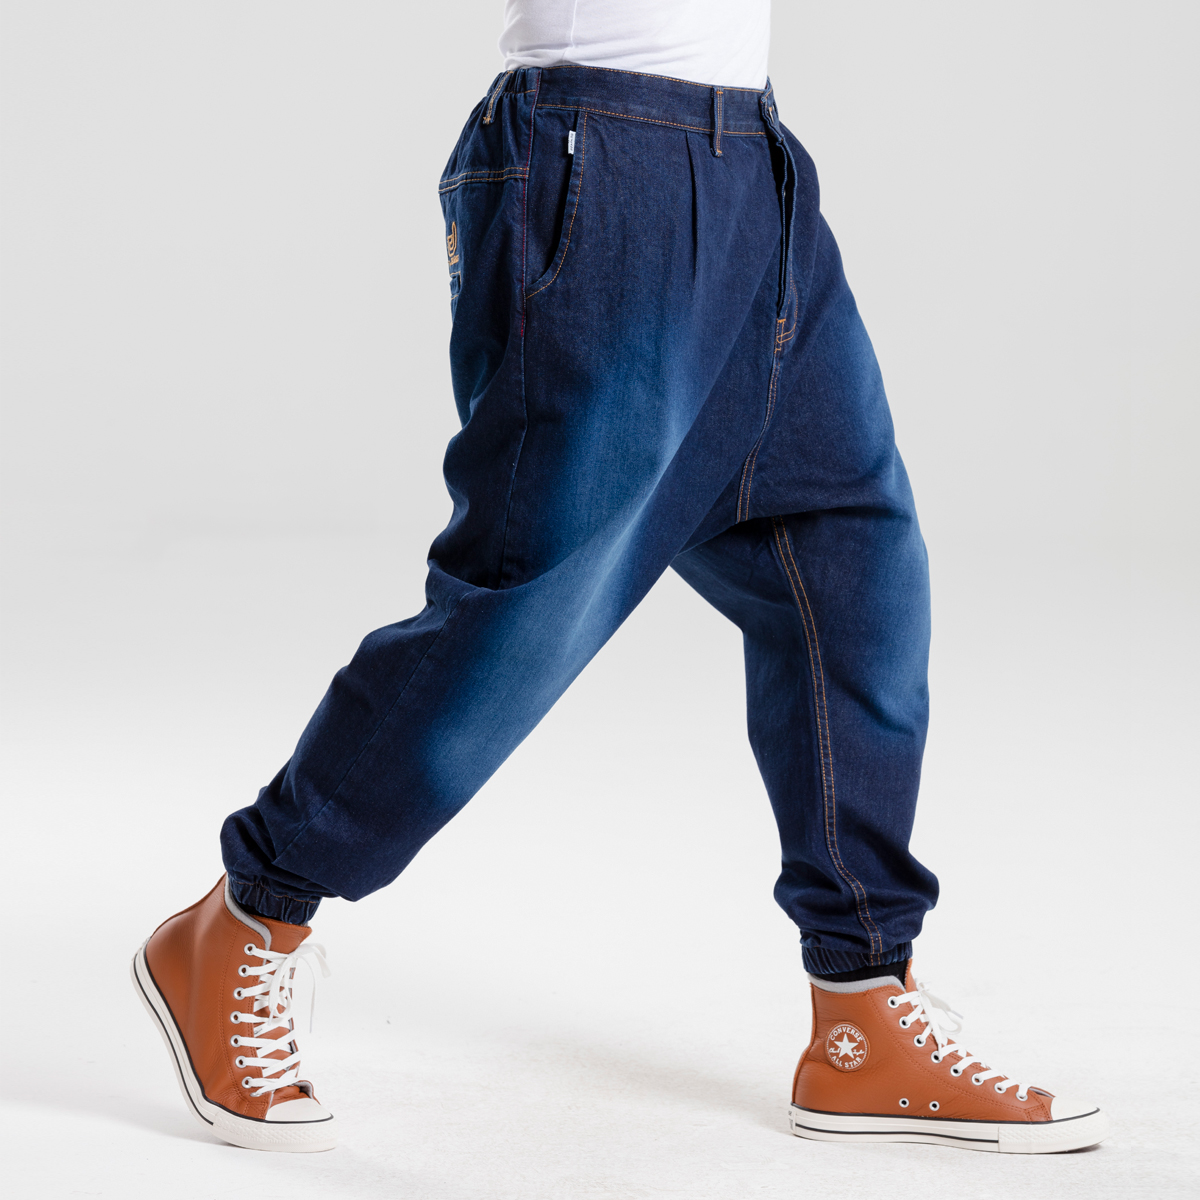 saroual jeans usual blue dcjeans profil